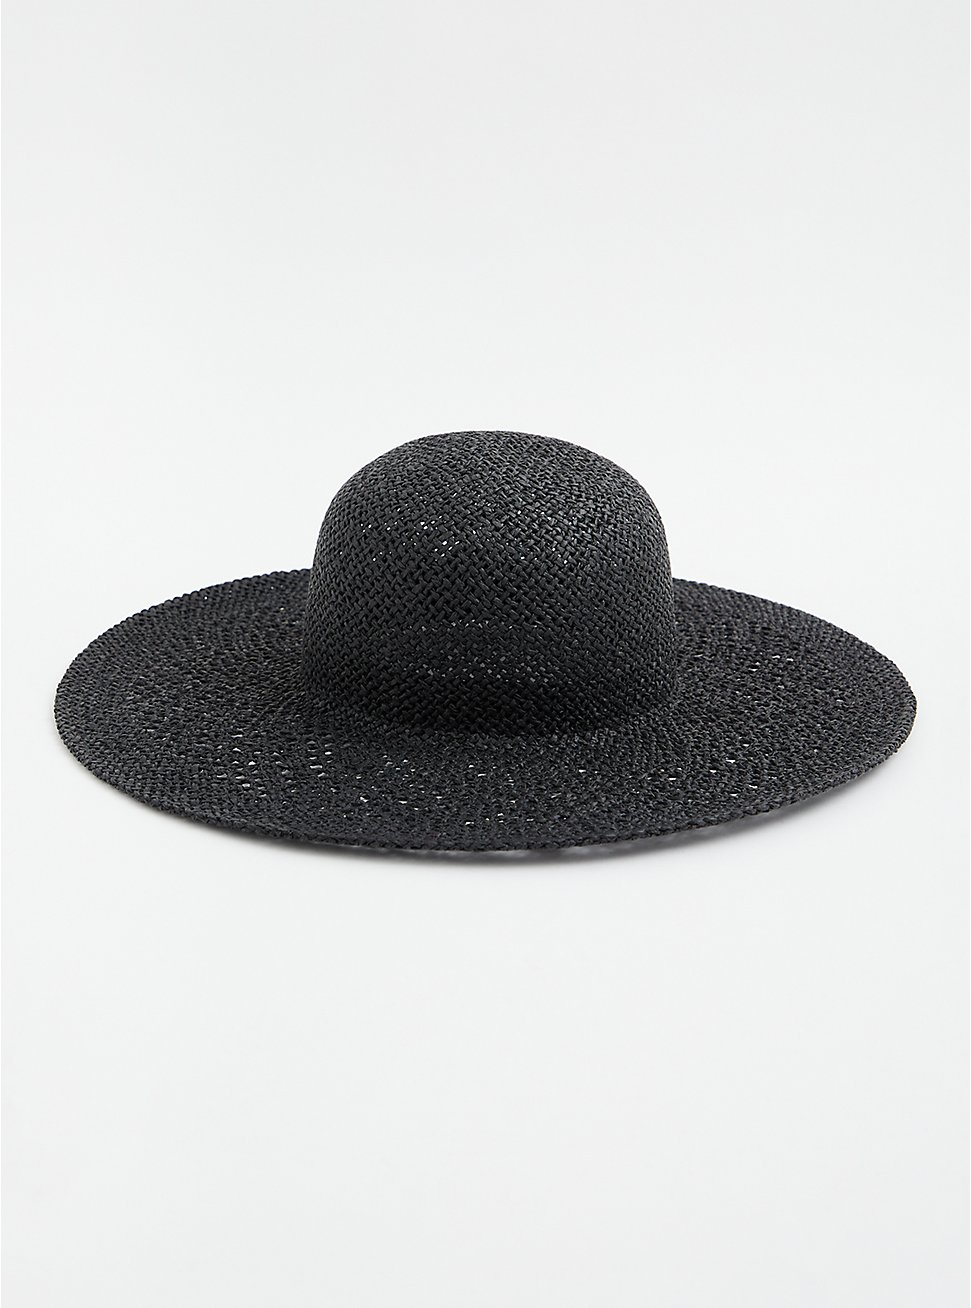 Black Open Weave Floppy Hat, BLACK, hi-res